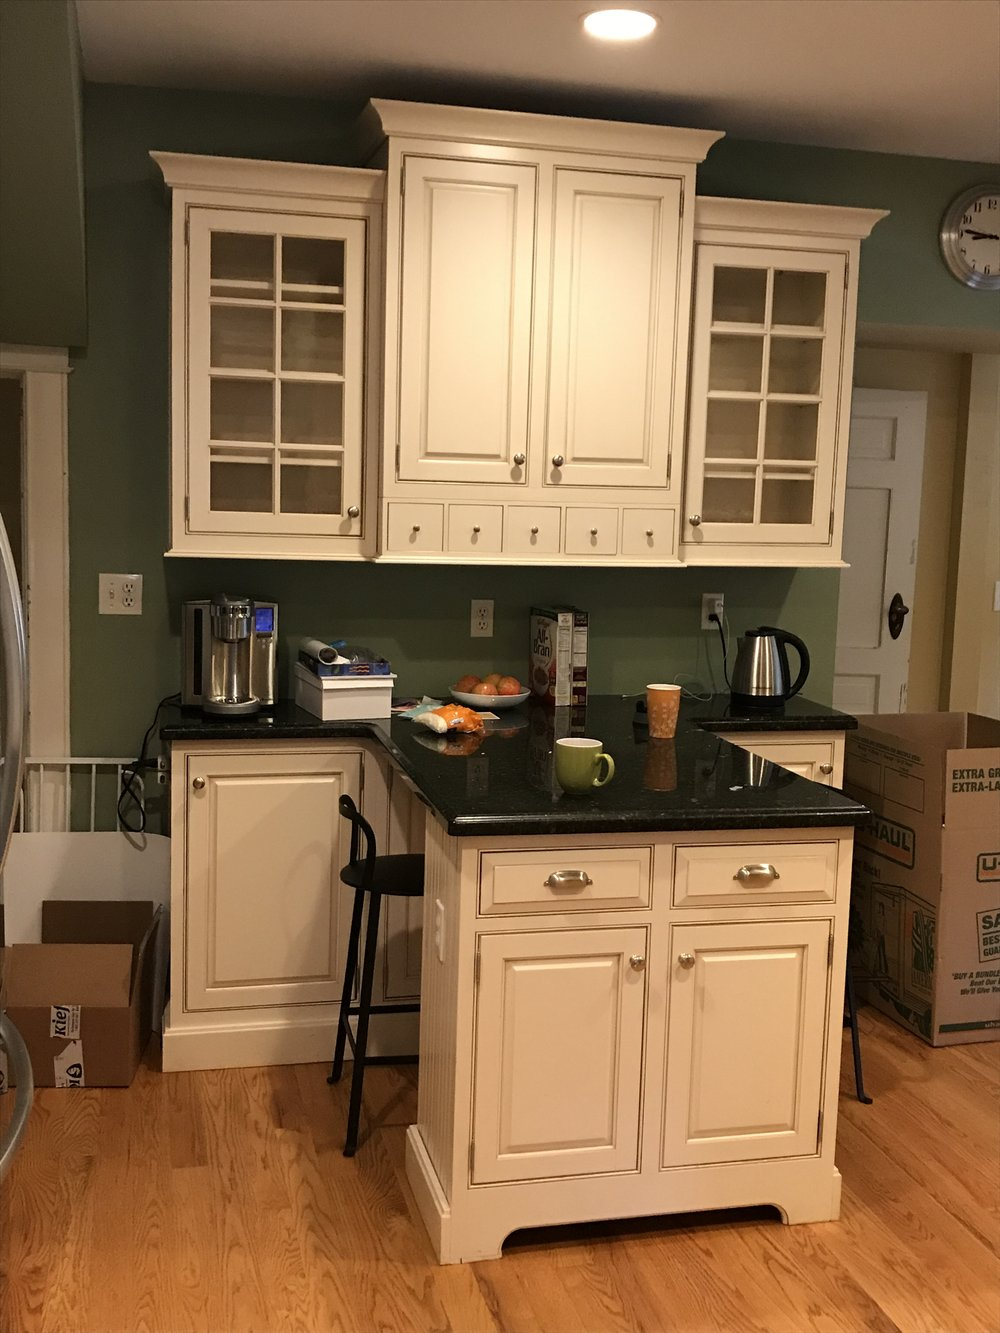 - These upper cabinets were moved